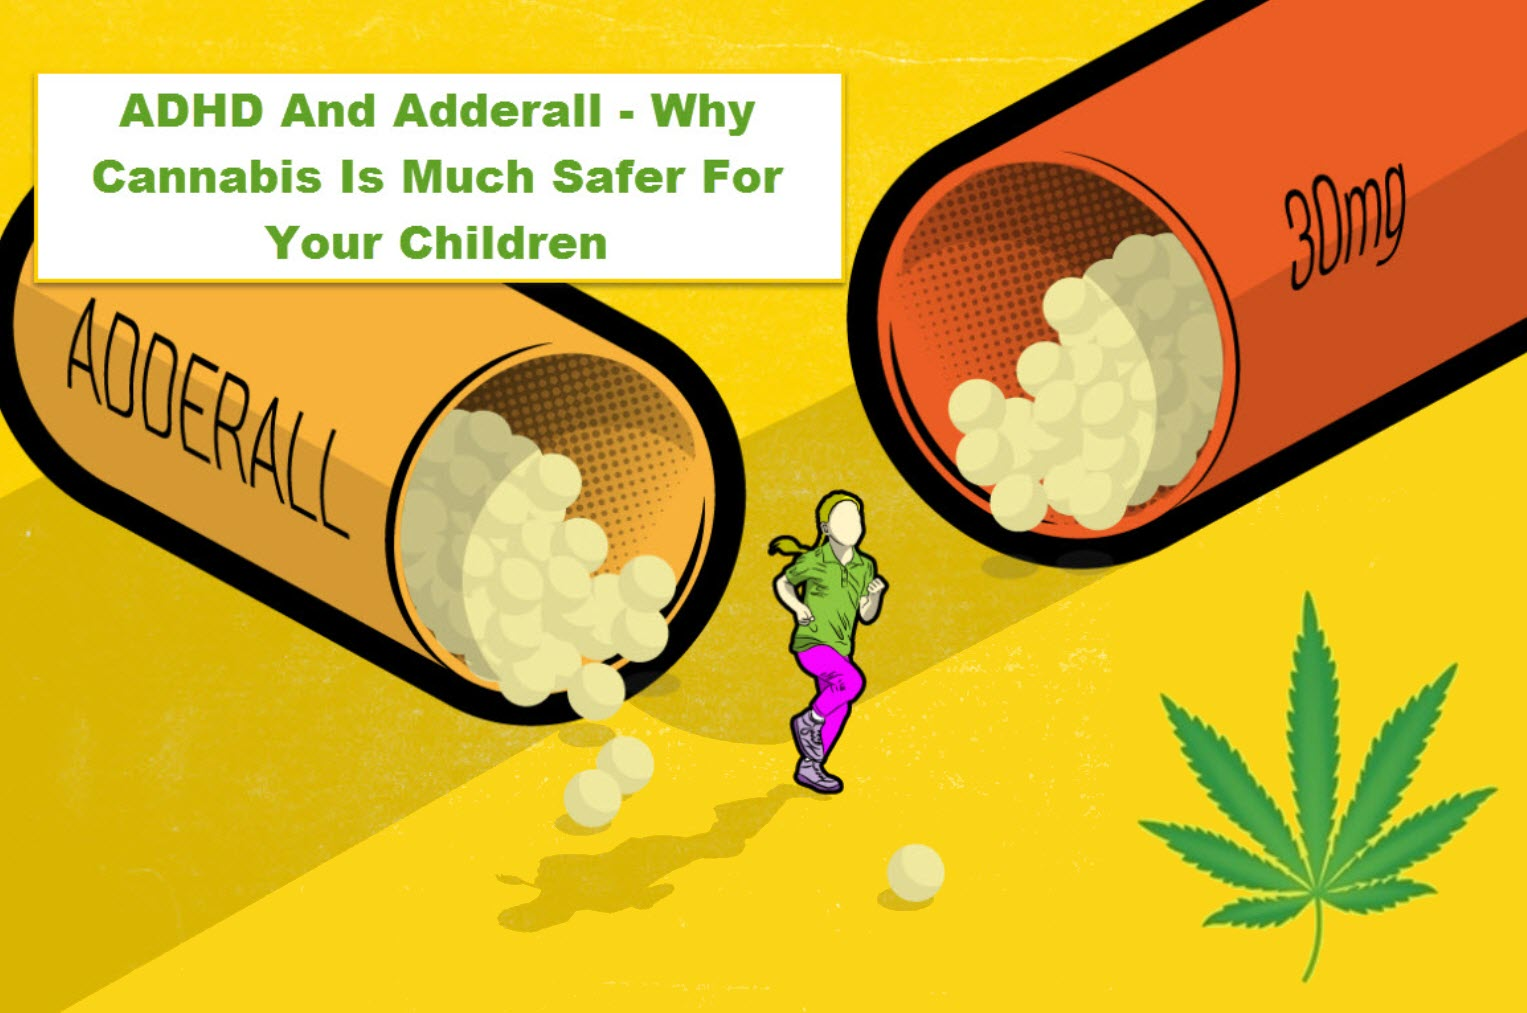 adhd cannabis treatment and why adderall is poison